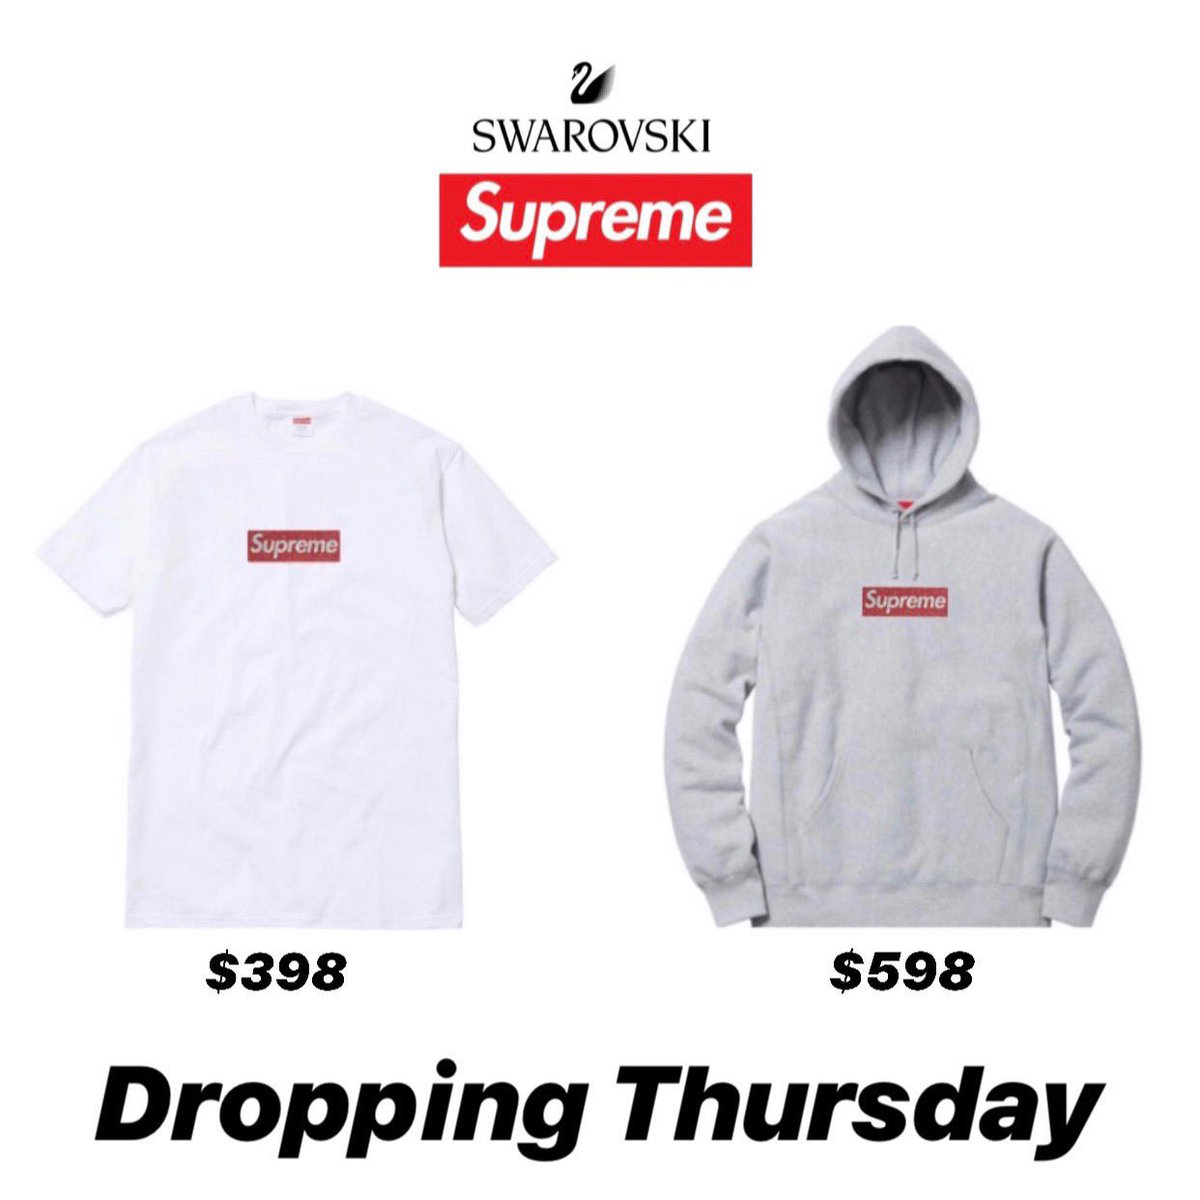 cc4a23416de Supreme Week 9 Droplist Celebrating the 25th Anniversary Supreme will be  releasing a celebratory Box Logo Tee and Hoody Releasing this Thursday  April 25th ...